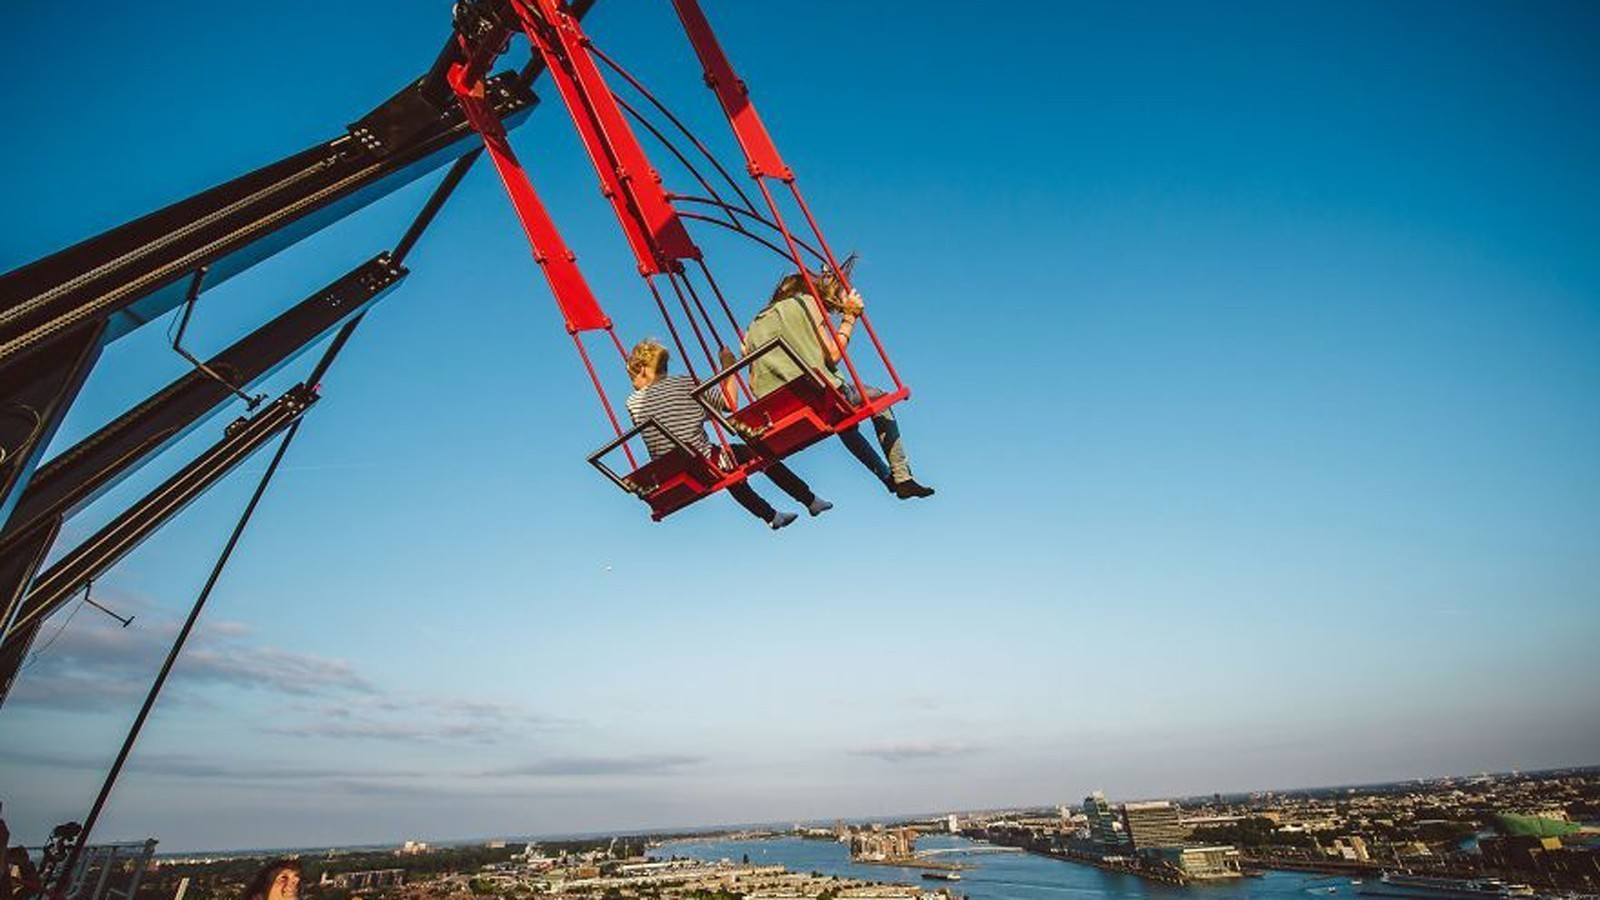 OverTheEdge, Europe's highest swing